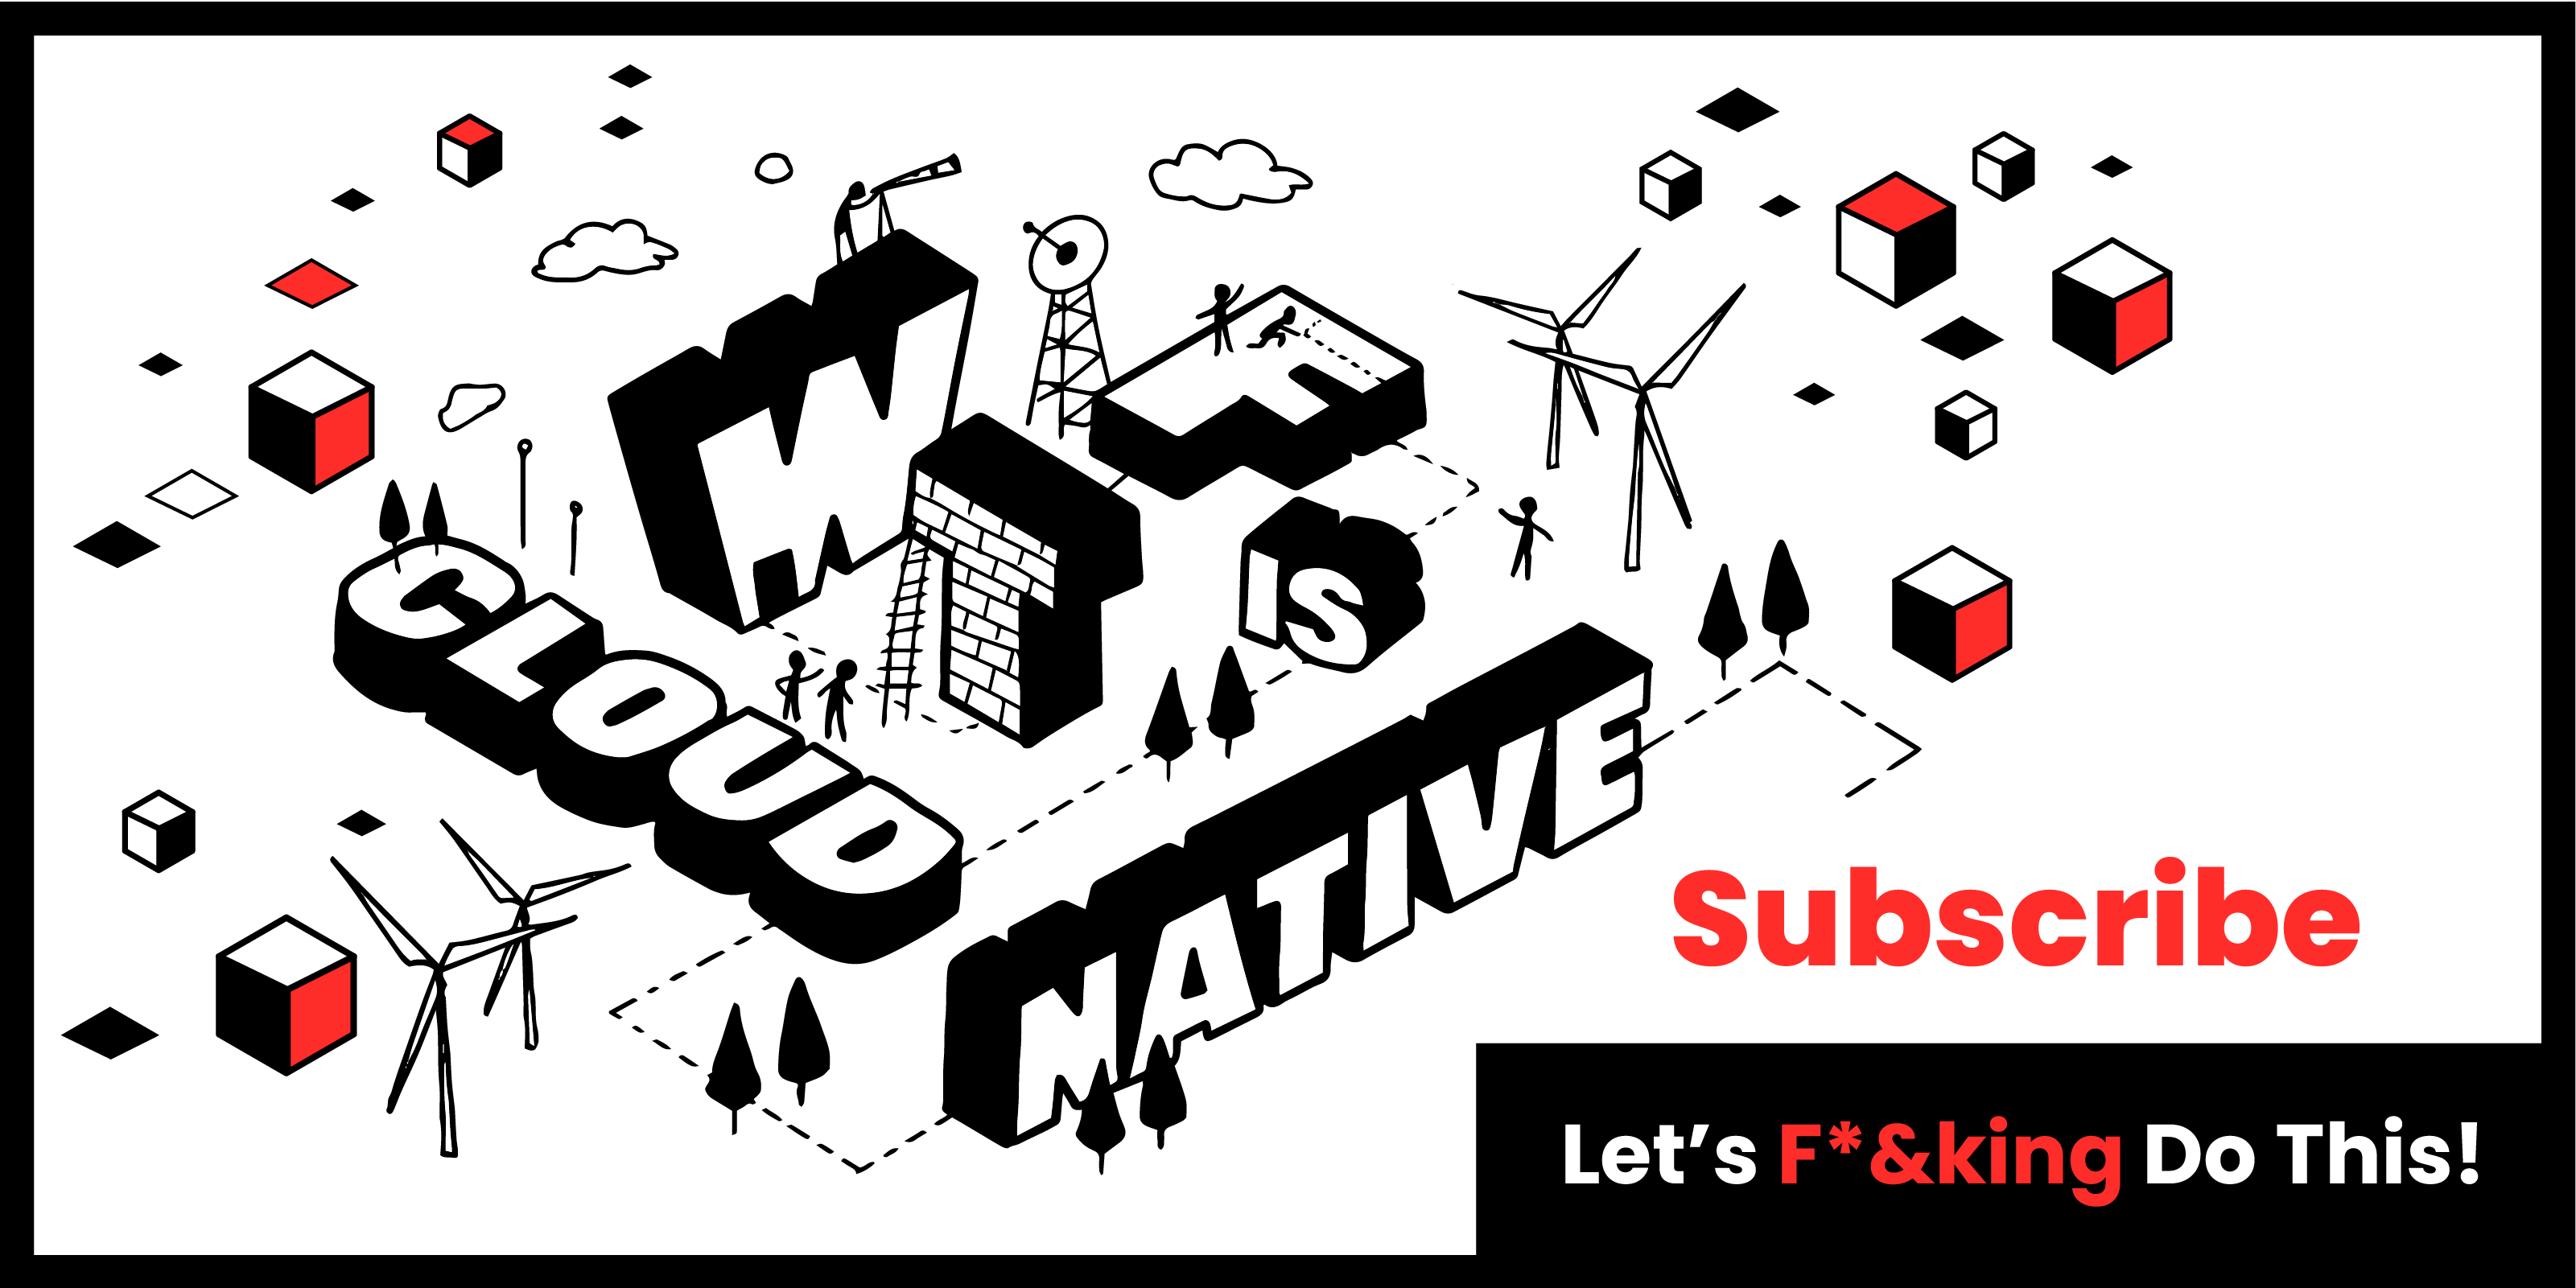 WTF_subscription